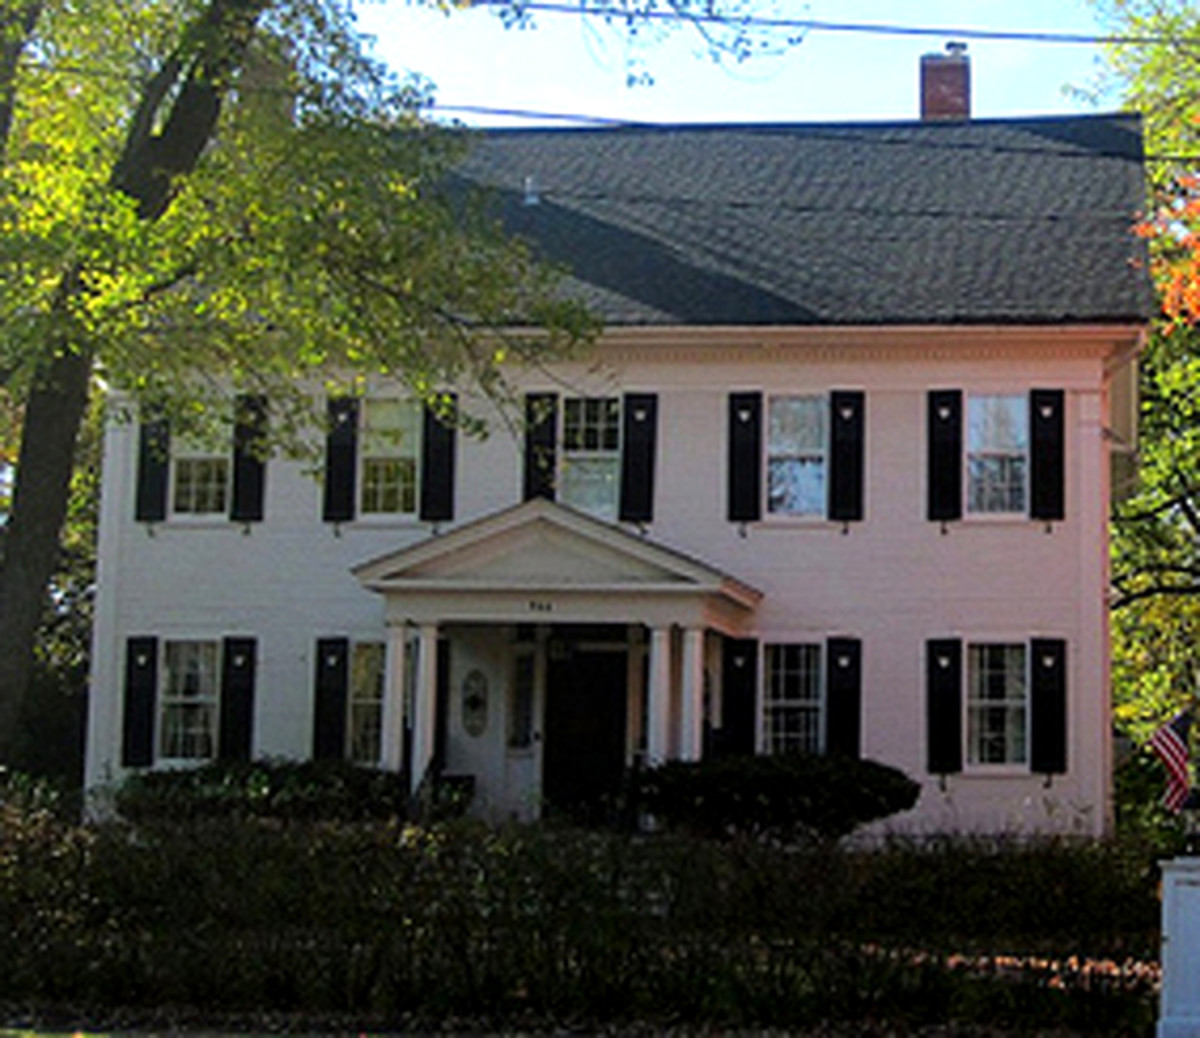 Large Colonial Revival Home c. 1890.